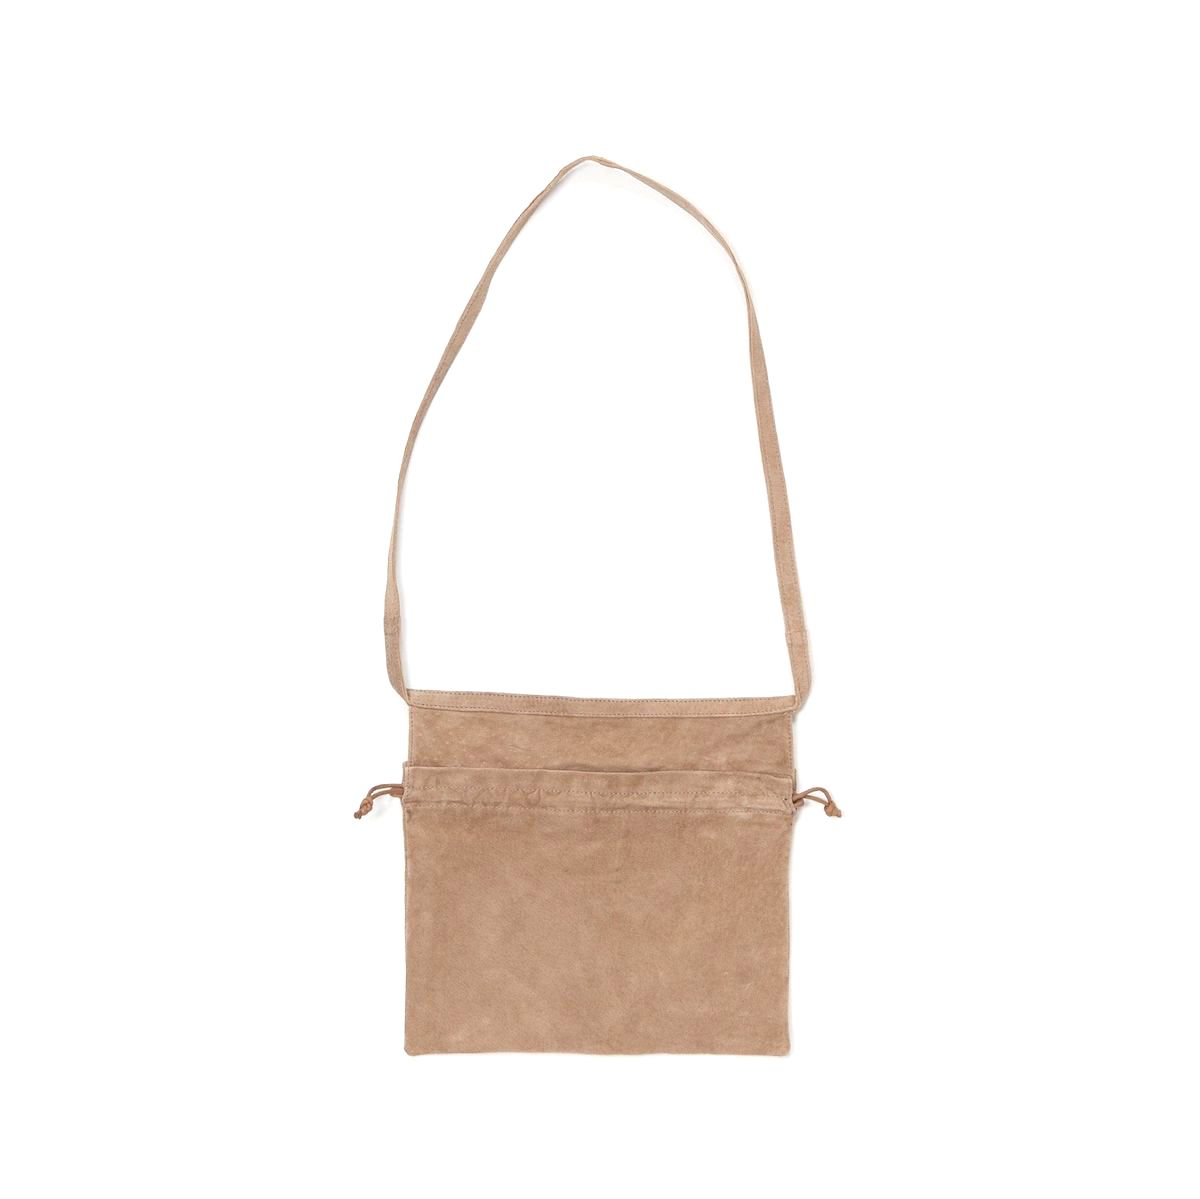 Hender Scheme / red cross bag small Beige